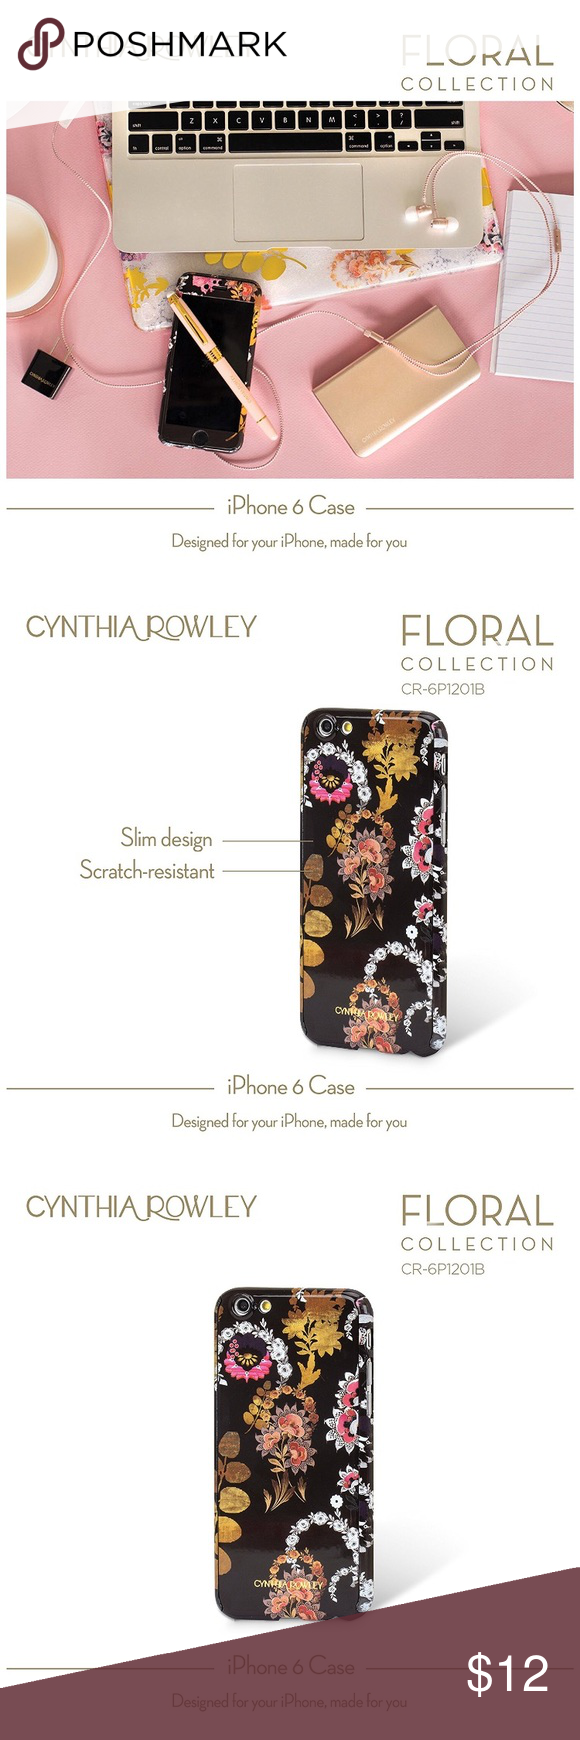 Cynthia Rowley IPhone 6/6S Case This is a two part case that snaps on easily. Has a front and back. Barely used and shows no signs of wear Cynthia Rowley Accessories Phone Cases